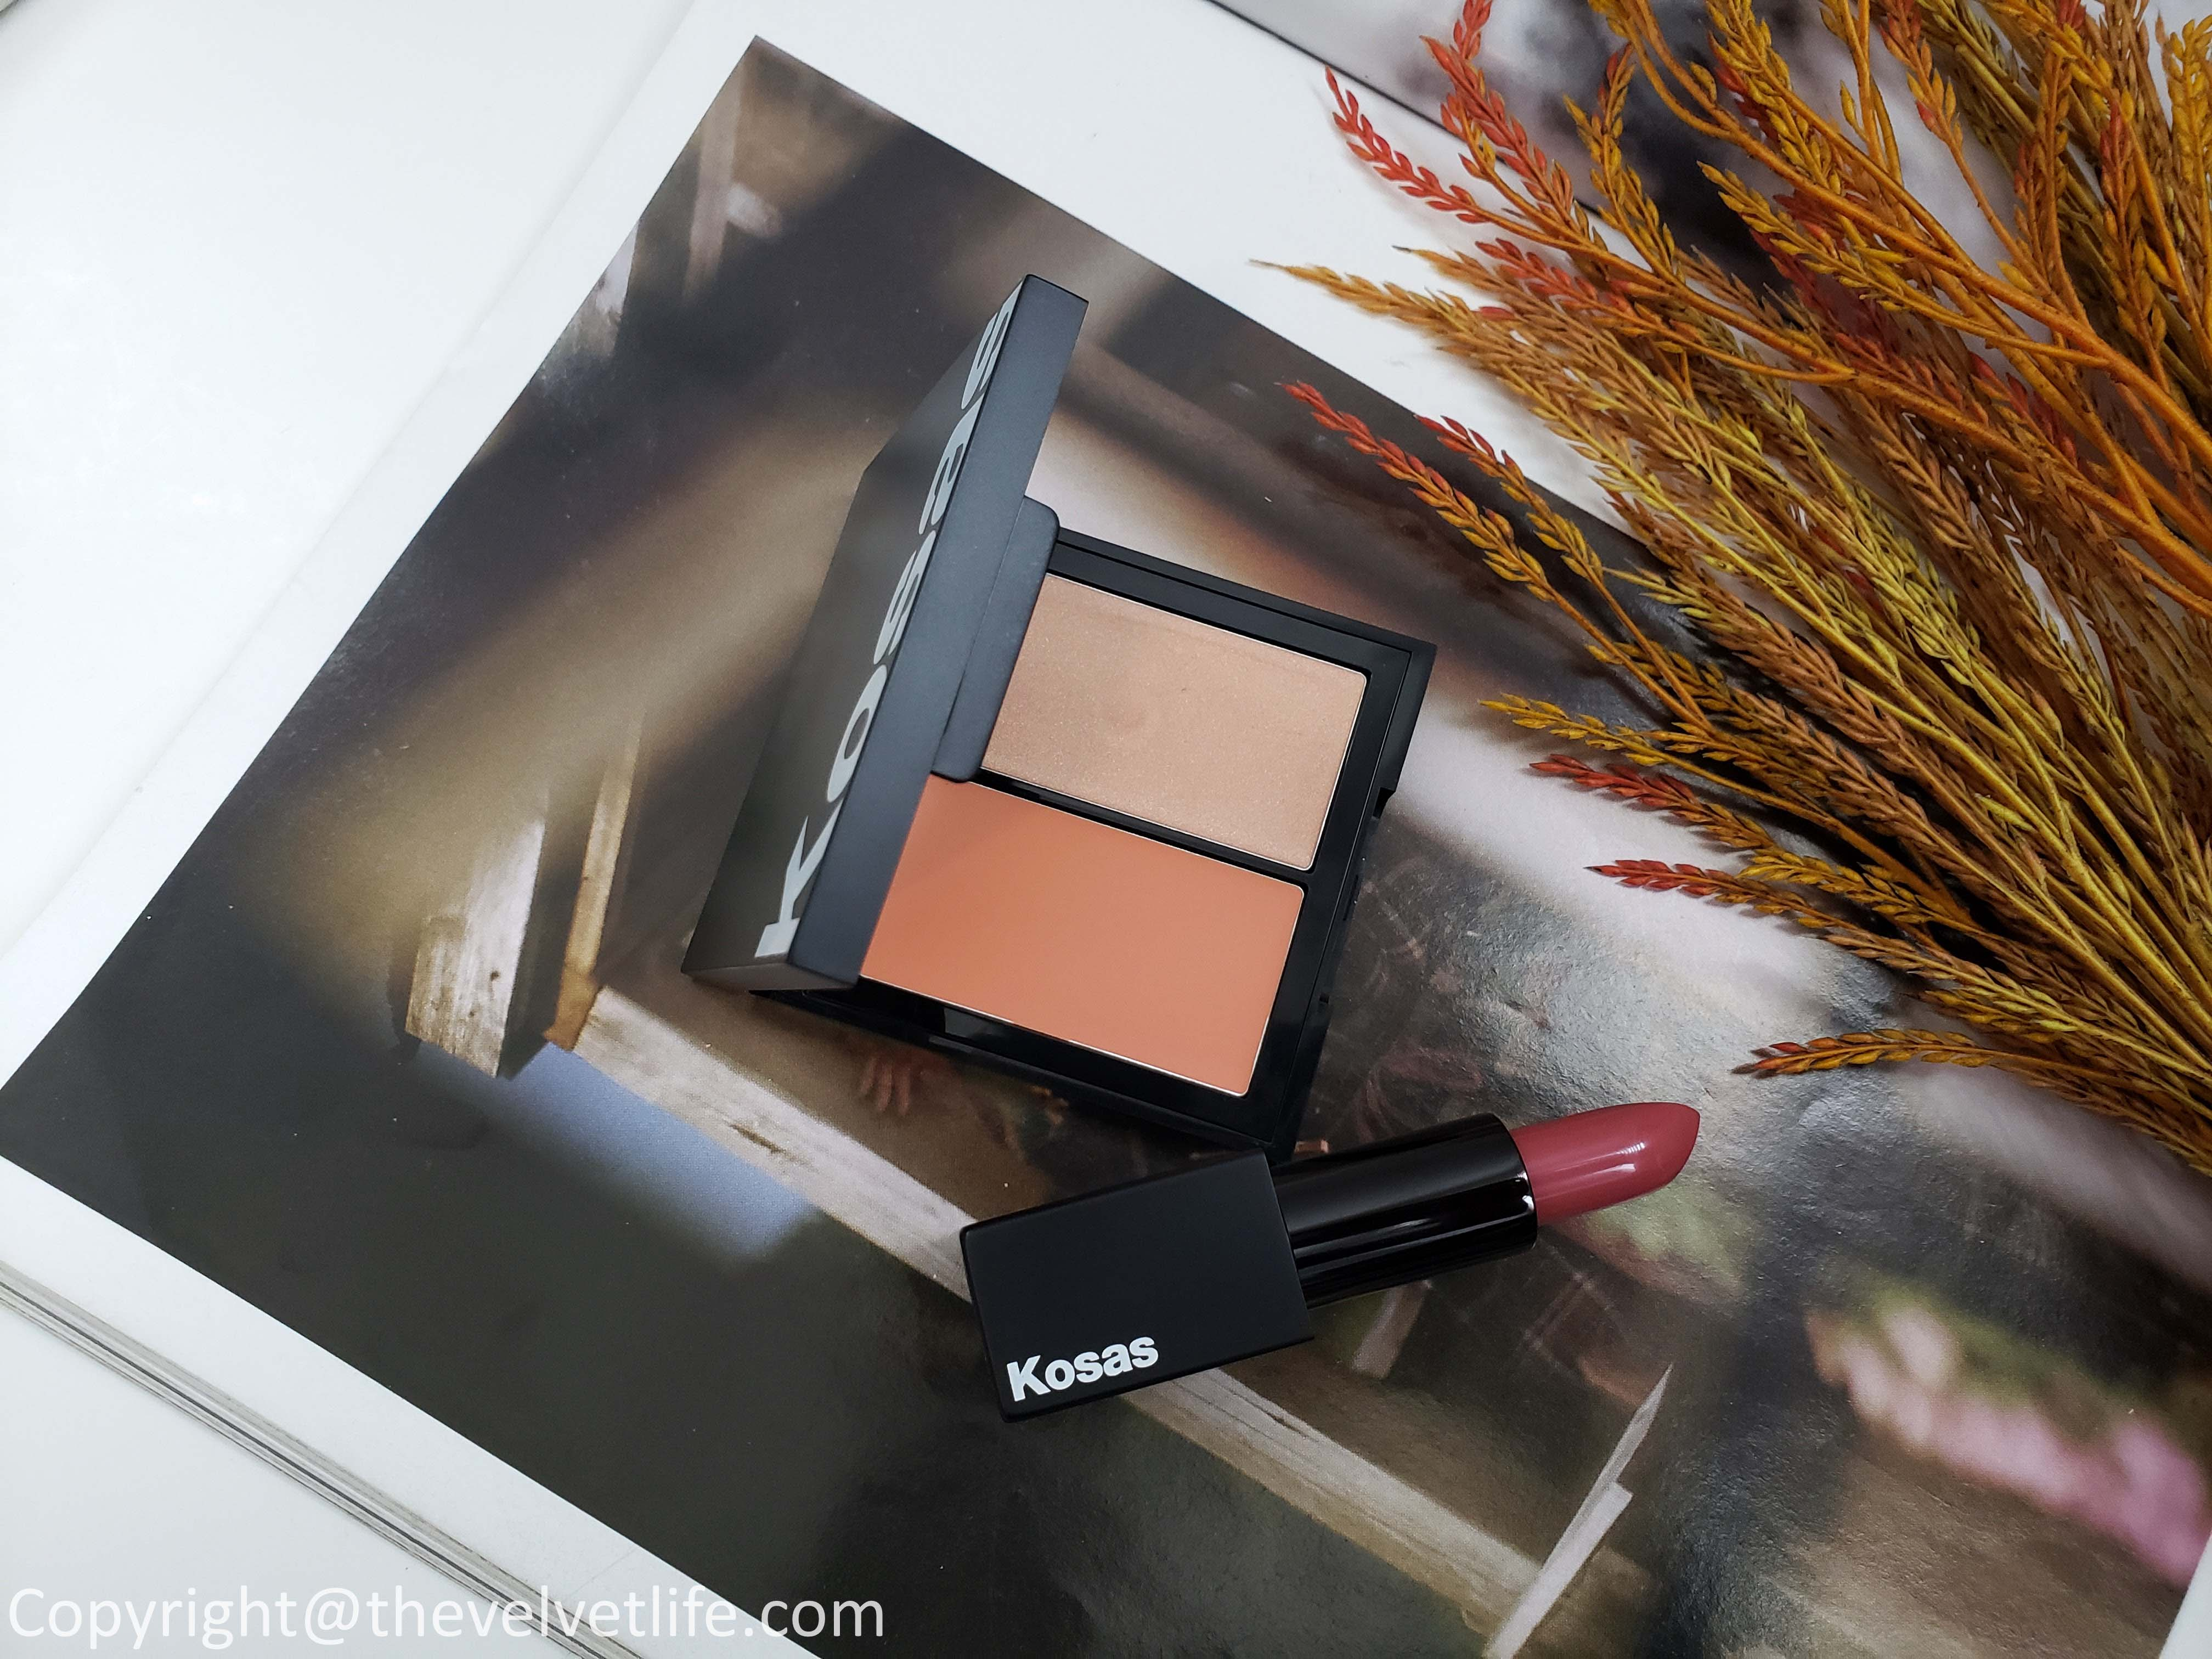 Kosas makeup review Revealer Concealer, The Big Clean Mascara, Weightless Lipstick Rosewater, and Color & Light Palette - Cream in Velvet Melon